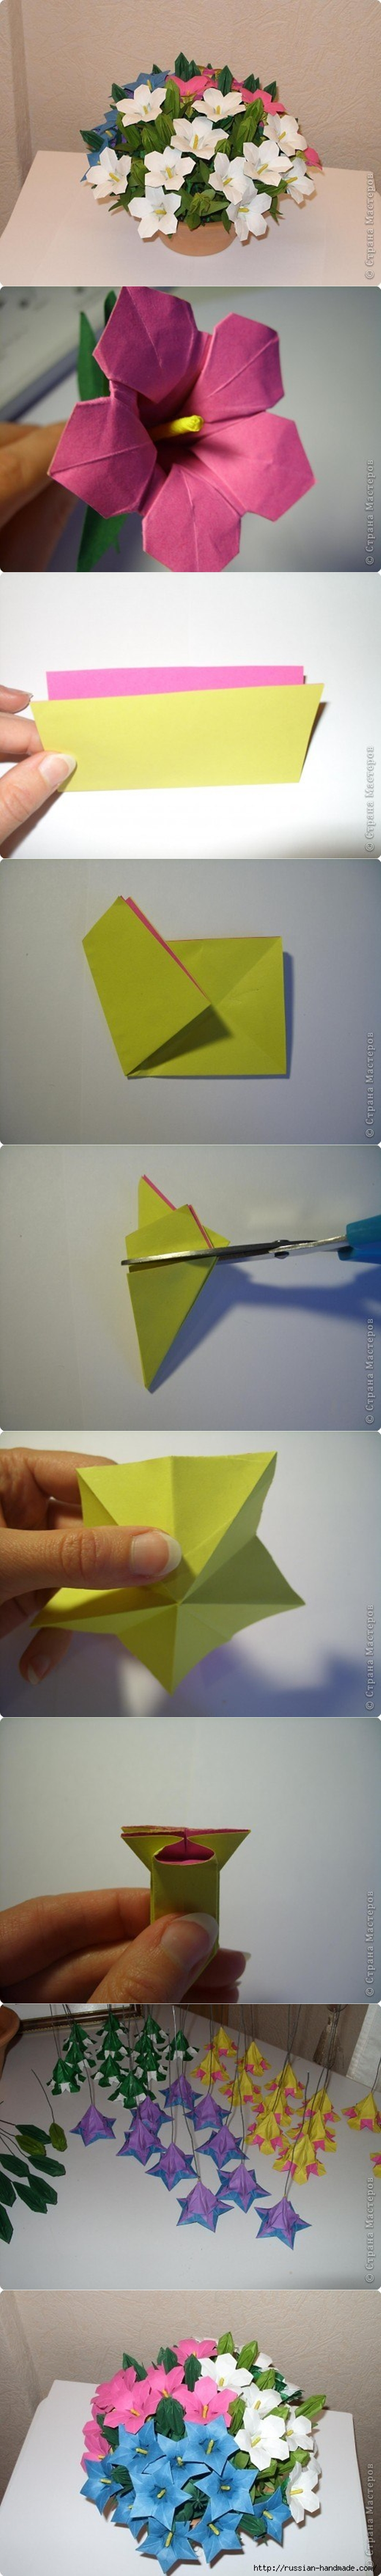 Diy Beautiful Paper Origami Lily Flower Bouquet Fab Art Diy Tutorials